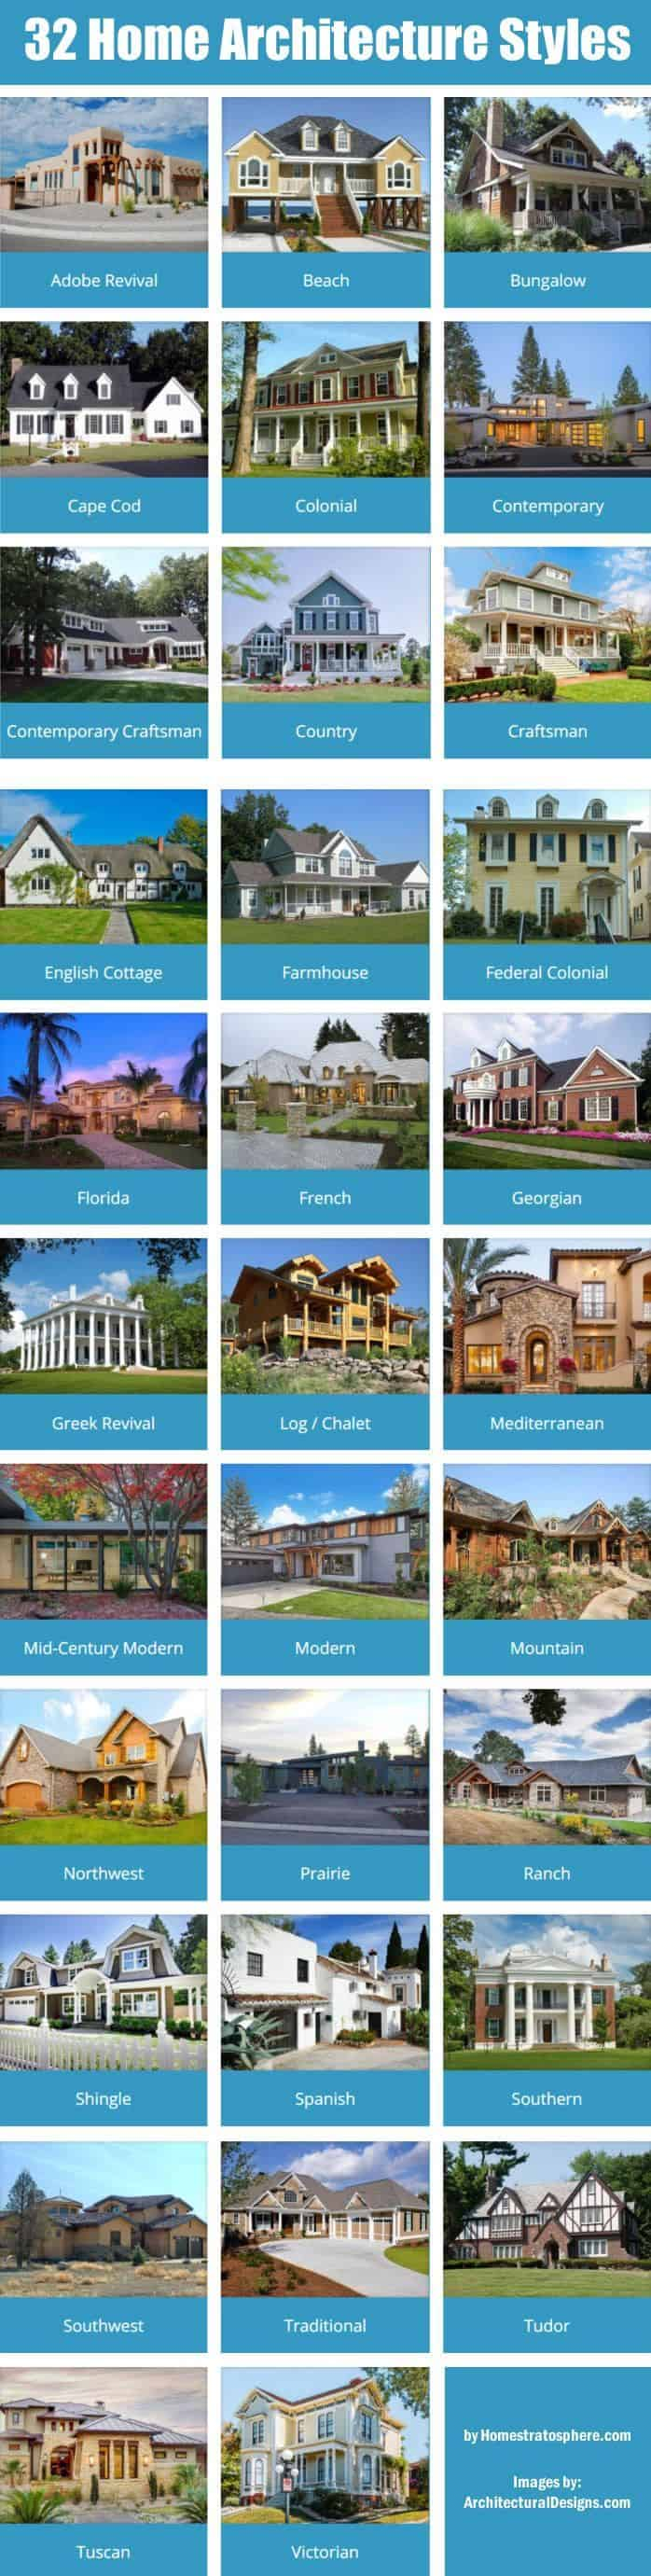 32 Home Architecture Styles